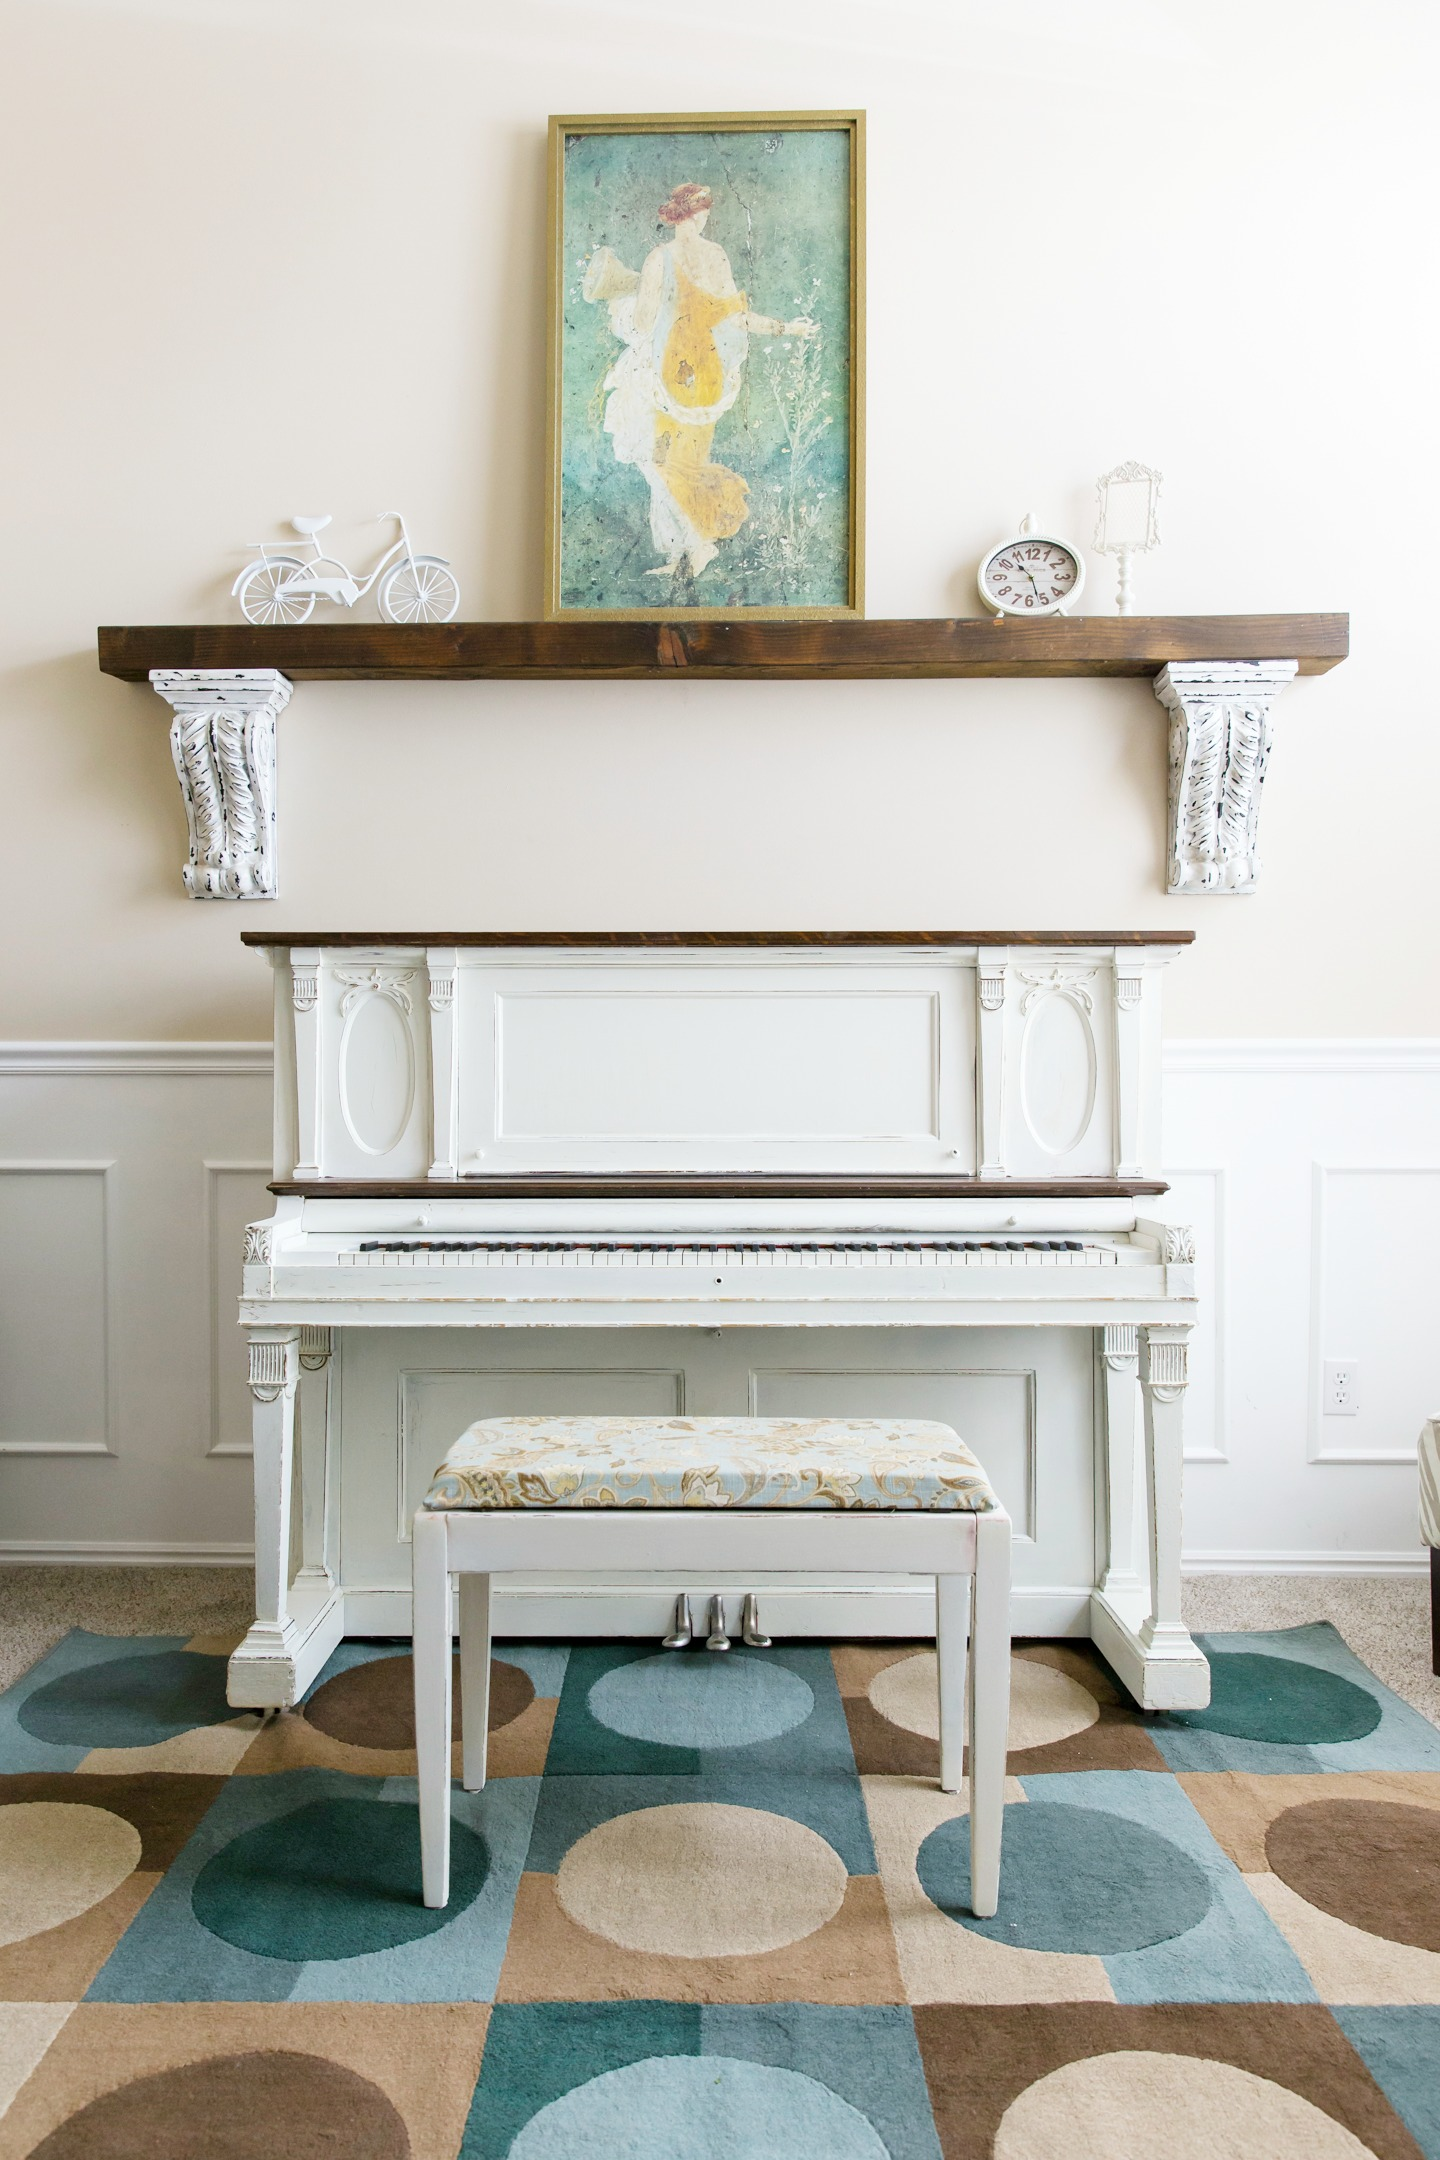 The Piano Project - How to Paint a Piano